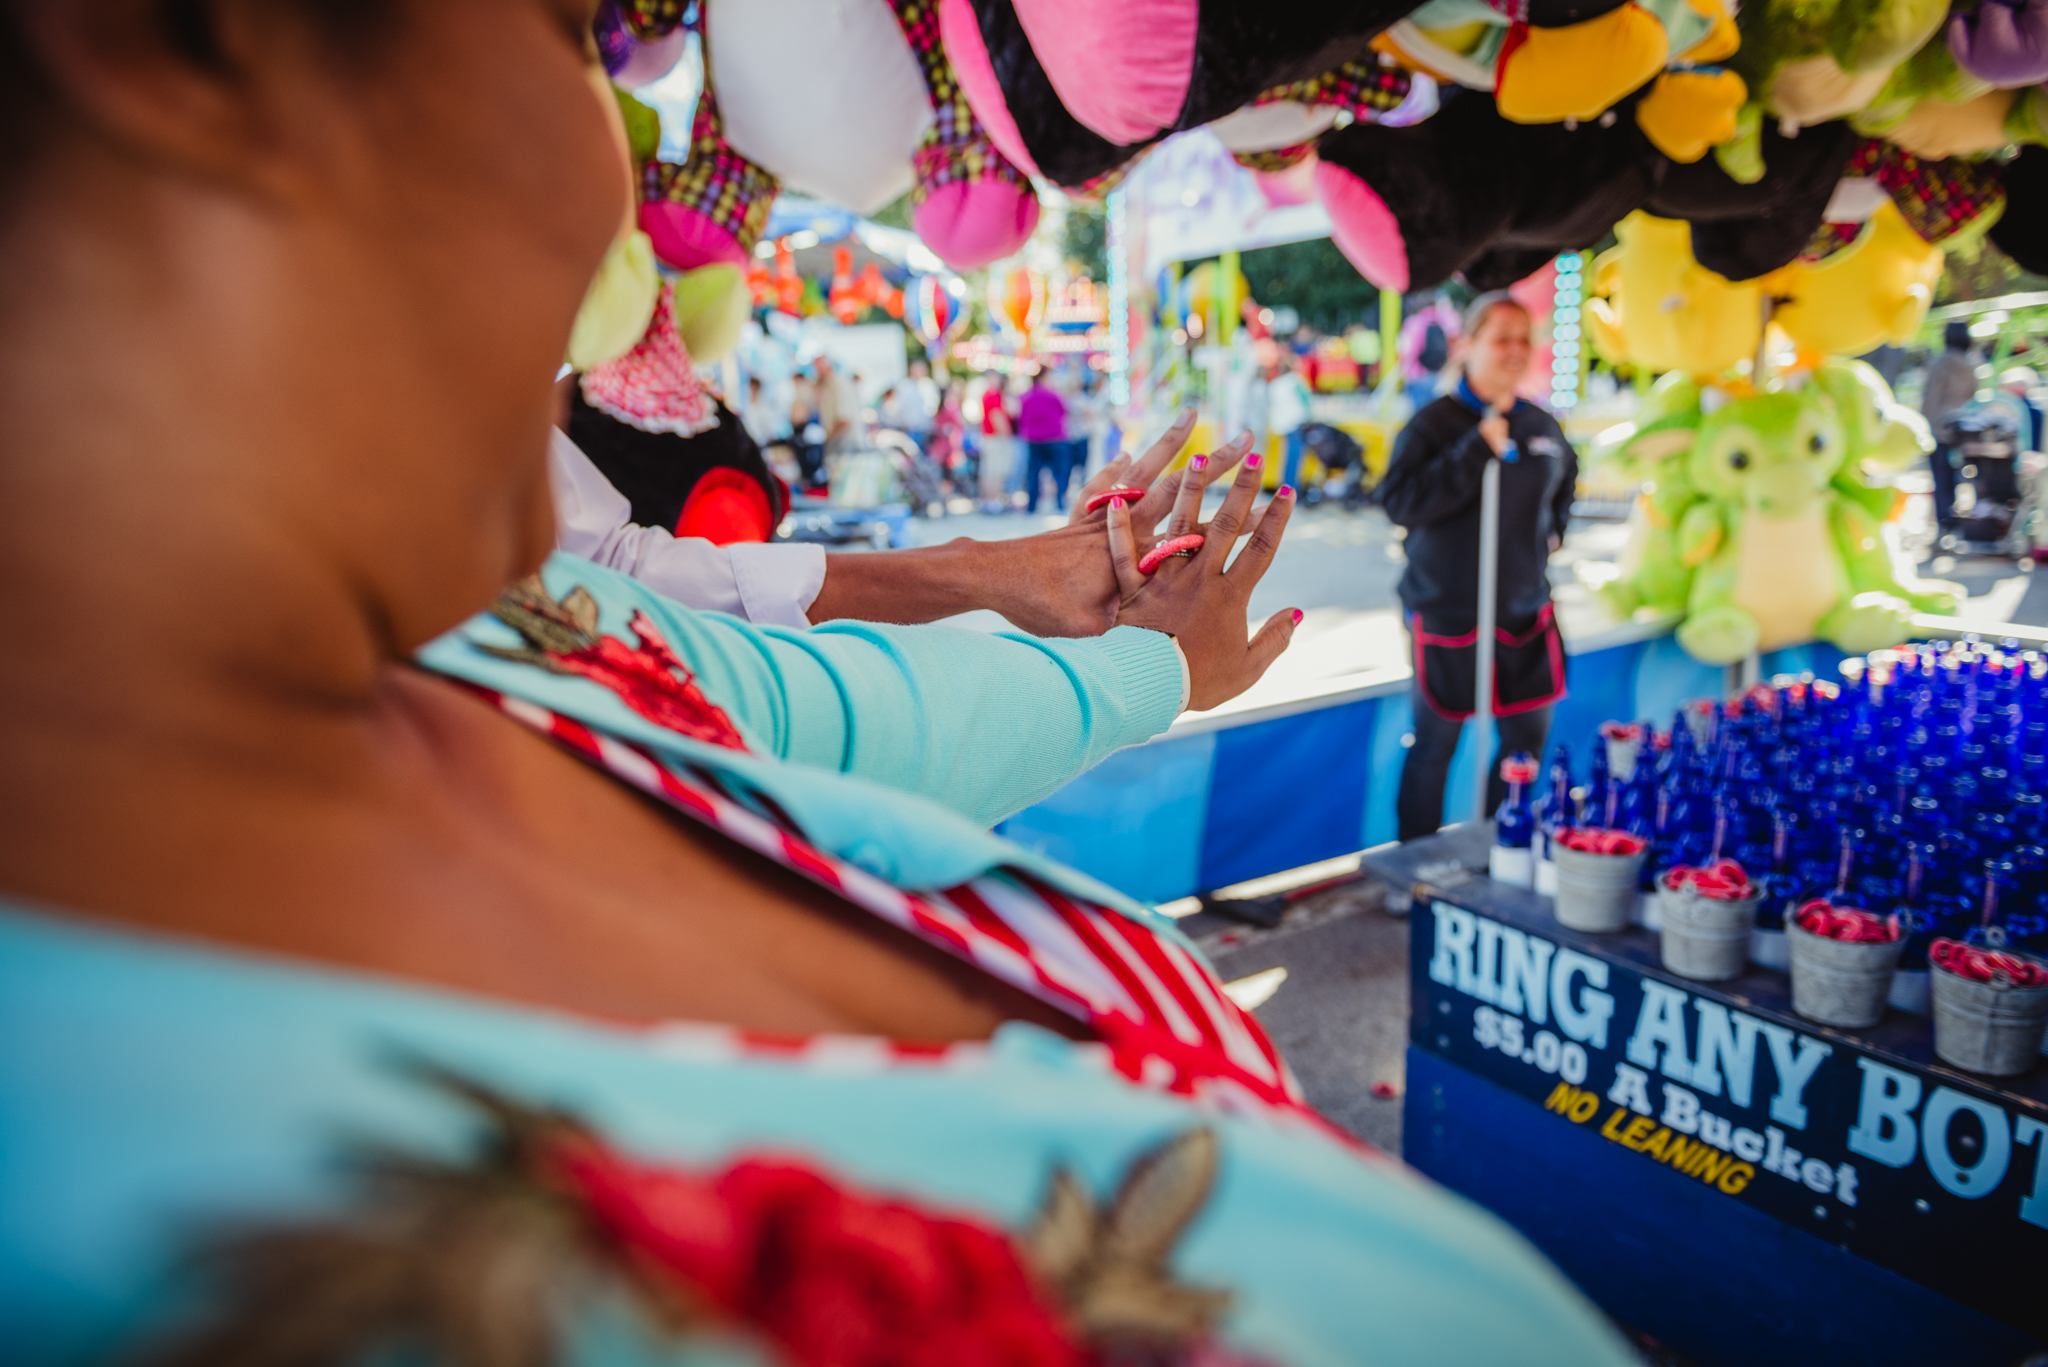 using-ring-toss-rings-as-wedding-bands-at-the-NC-State-fair.jpg